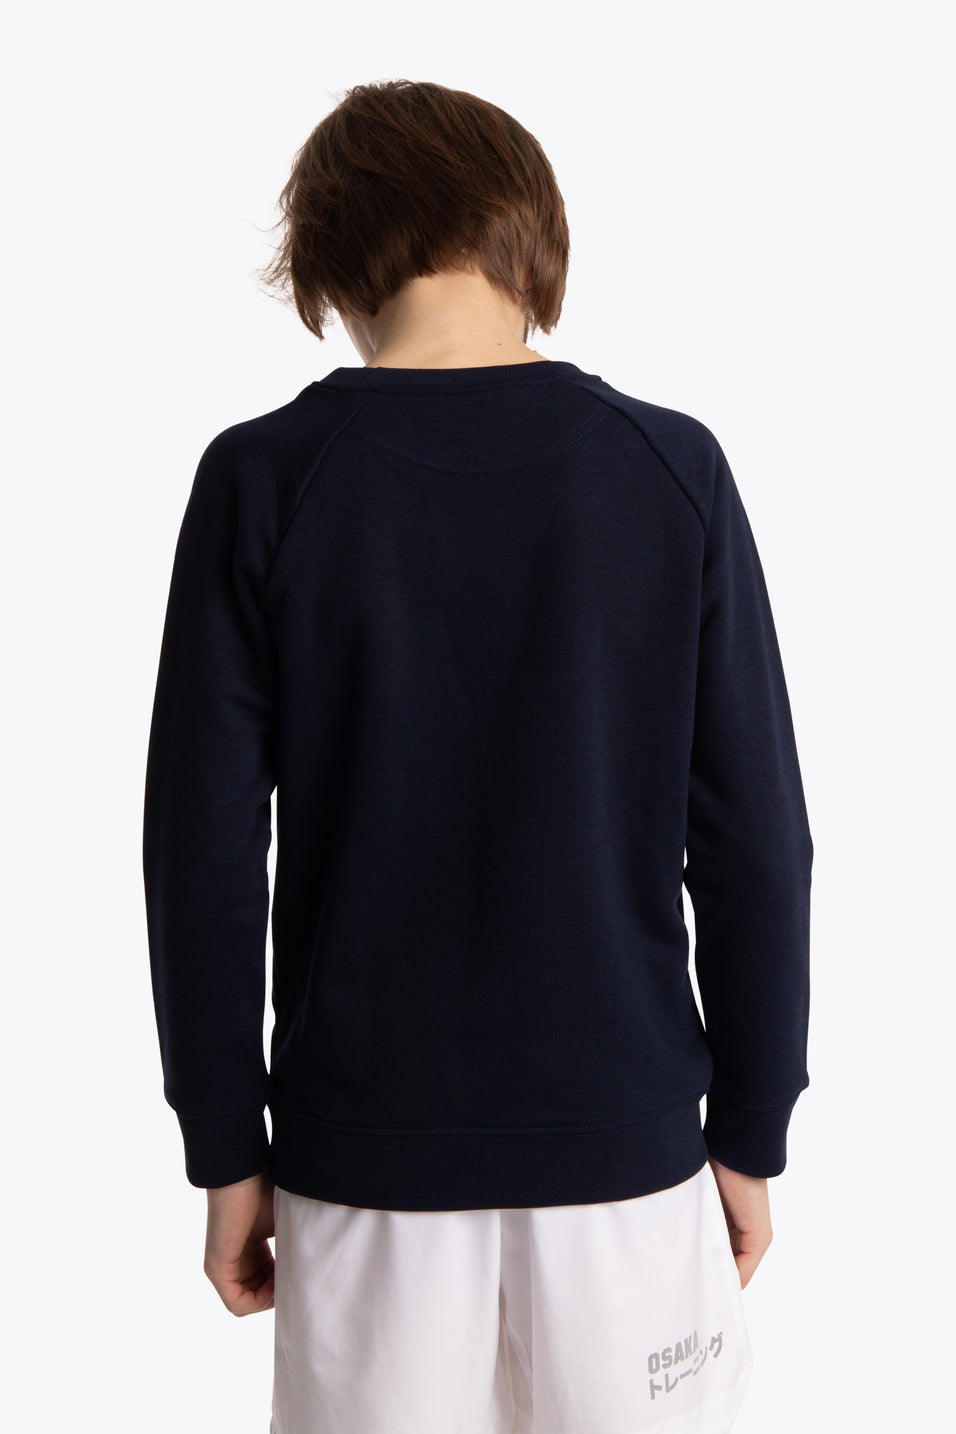 Osaka boy sweater navy